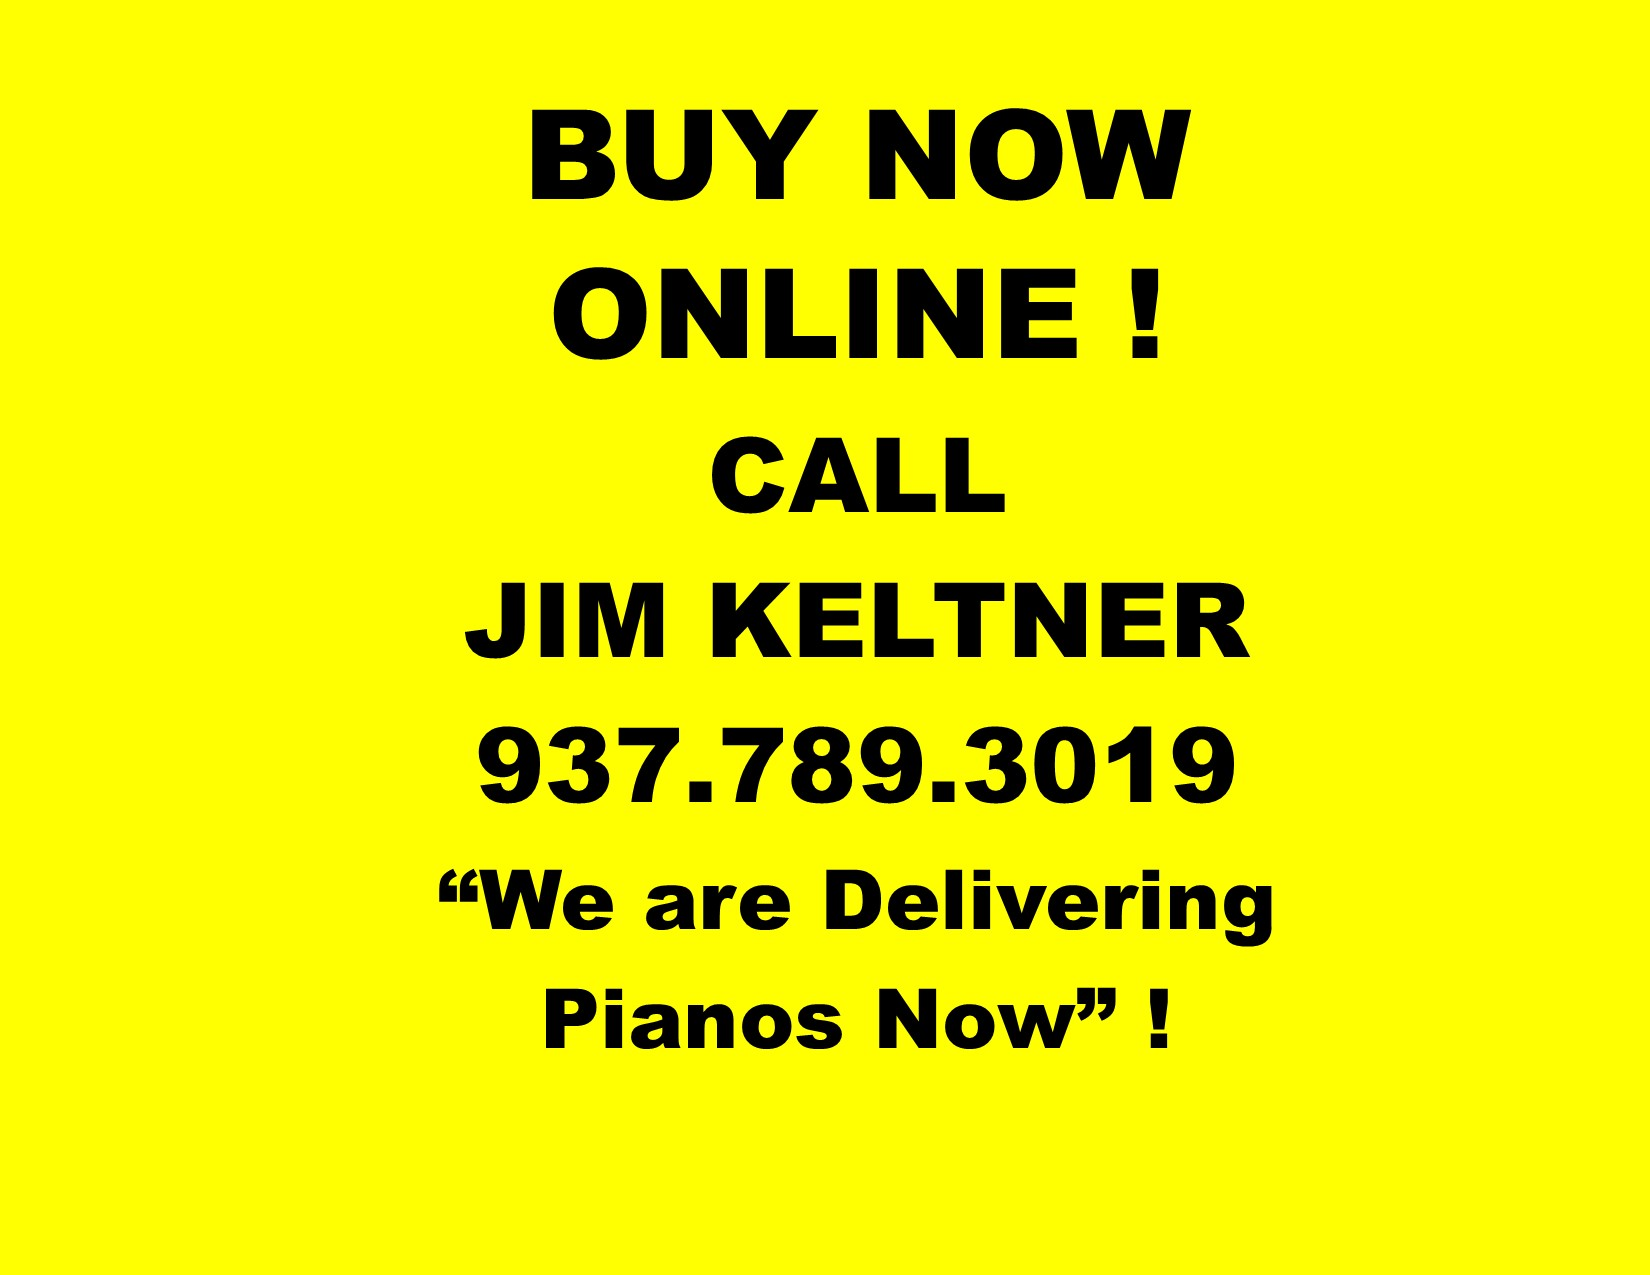 15428- BUY NOW ONLINE – WE ARE DELIVERING PIANOS NOW !